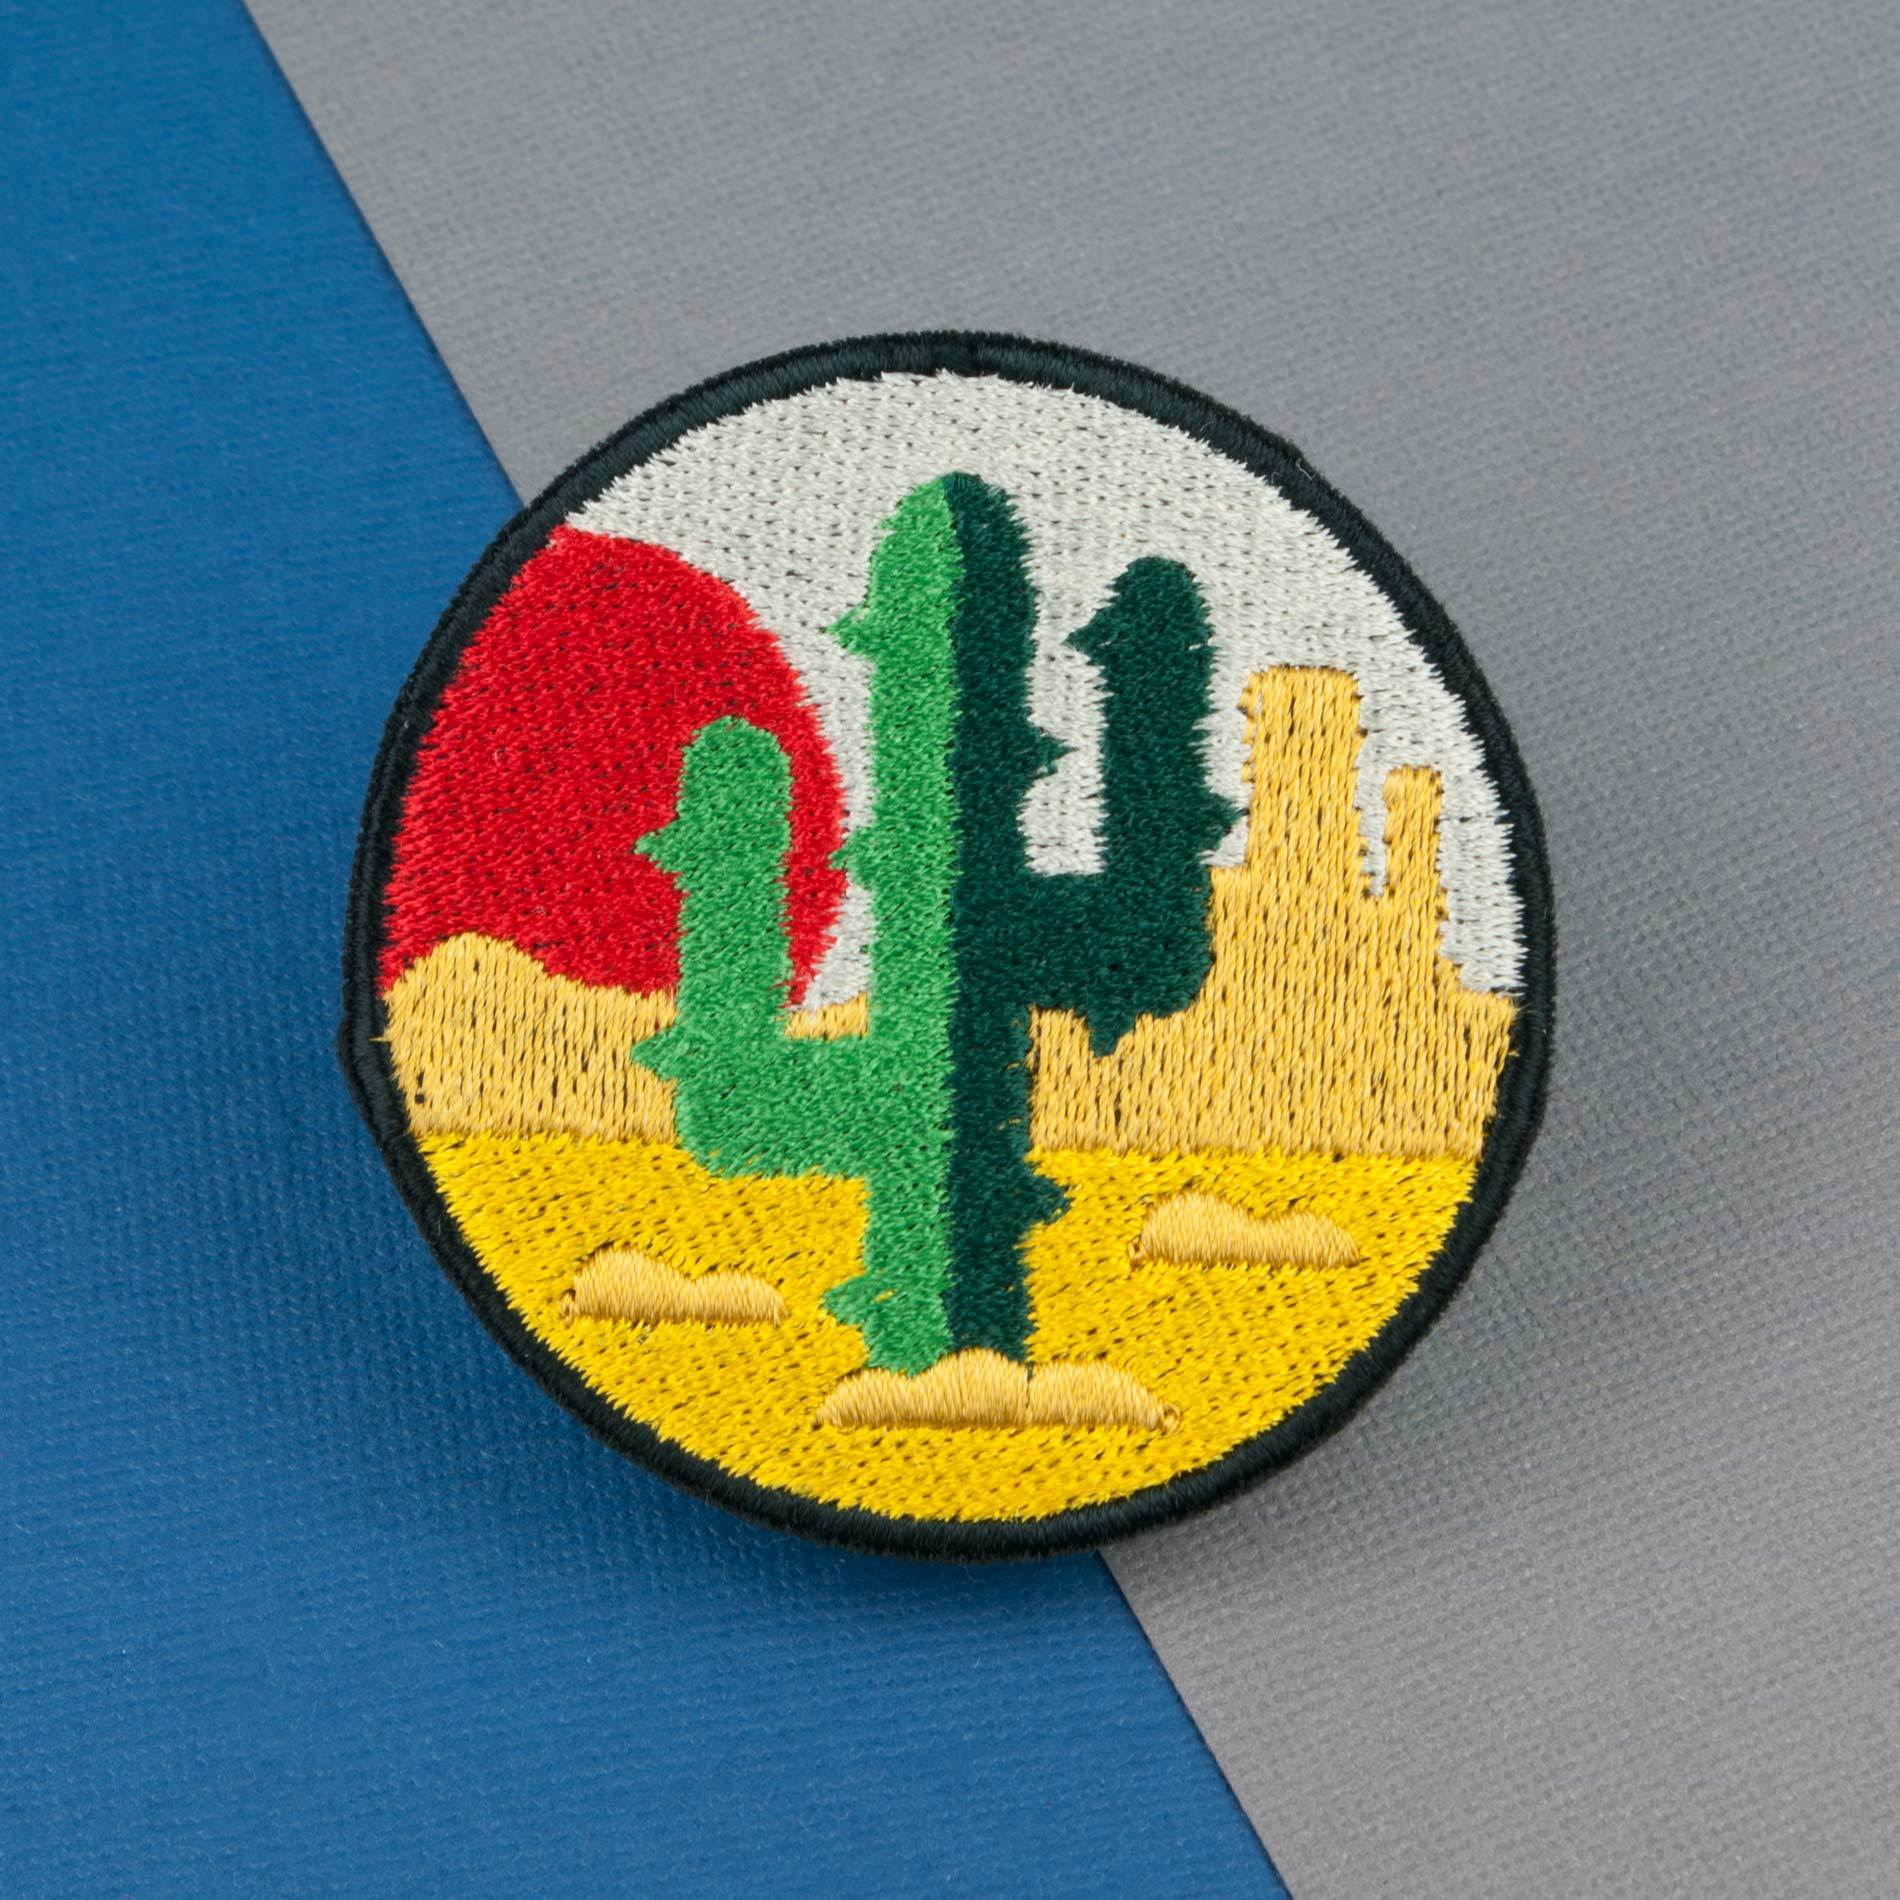 Green Cactus Logo Embroidered Iron On Patch